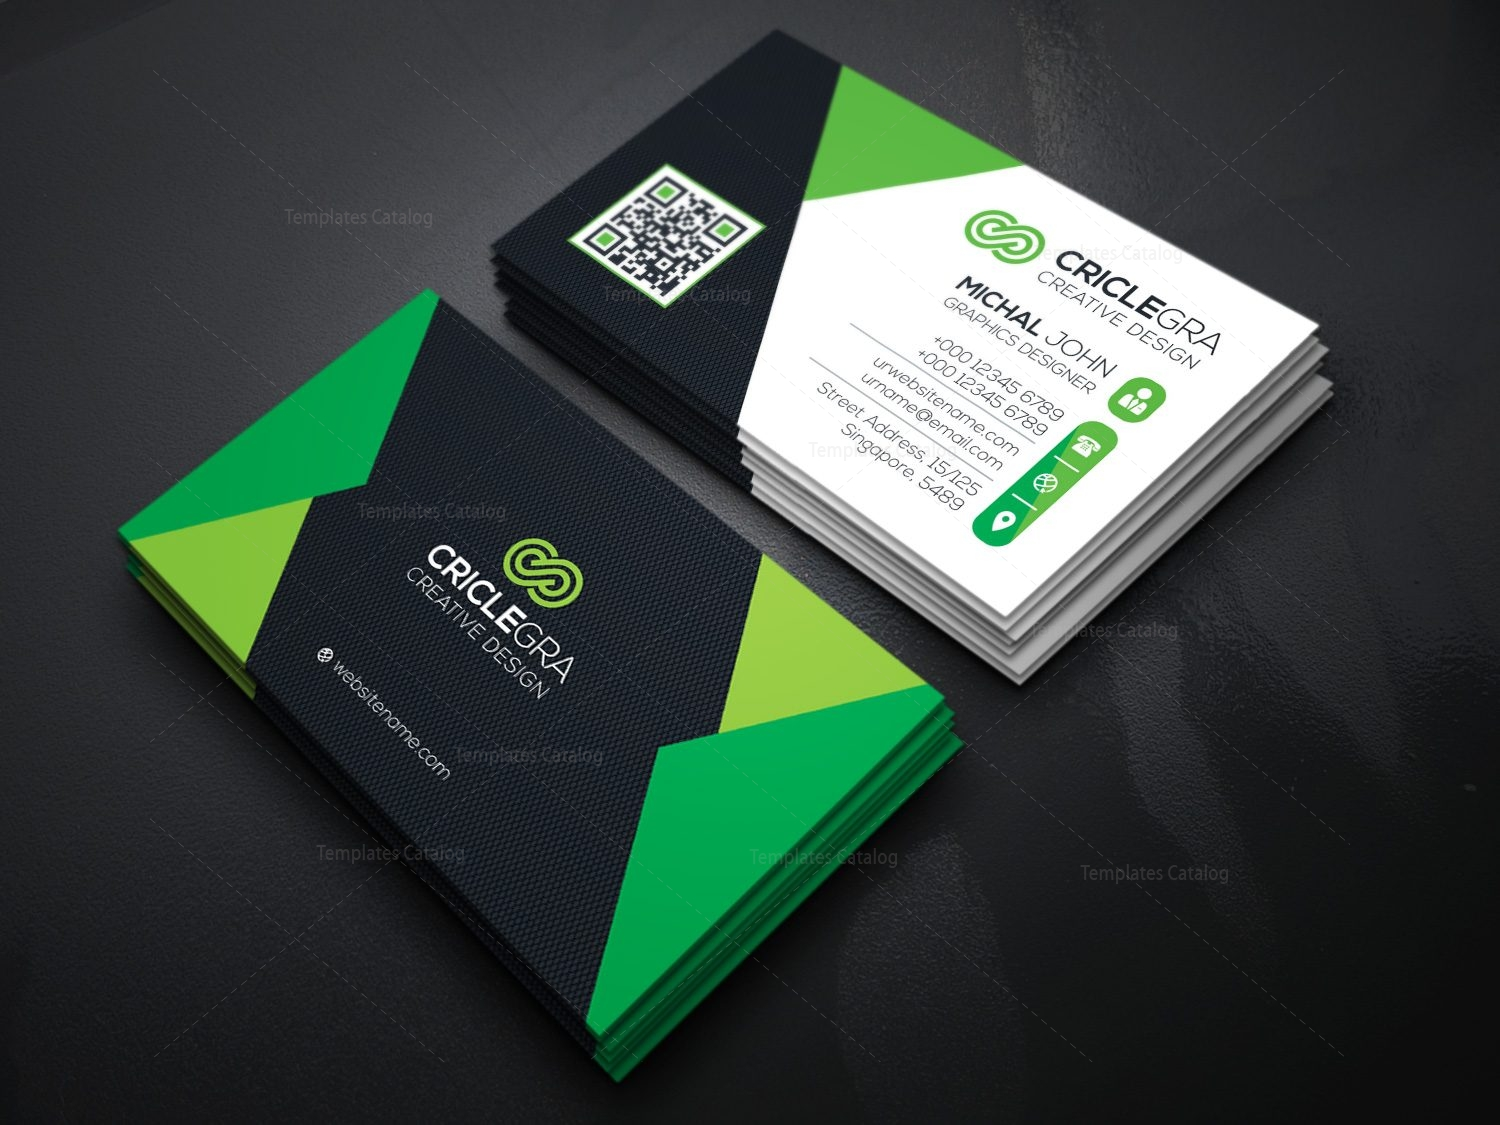 Elegant Visiting Card Template Template Catalog - Web design business cards templates